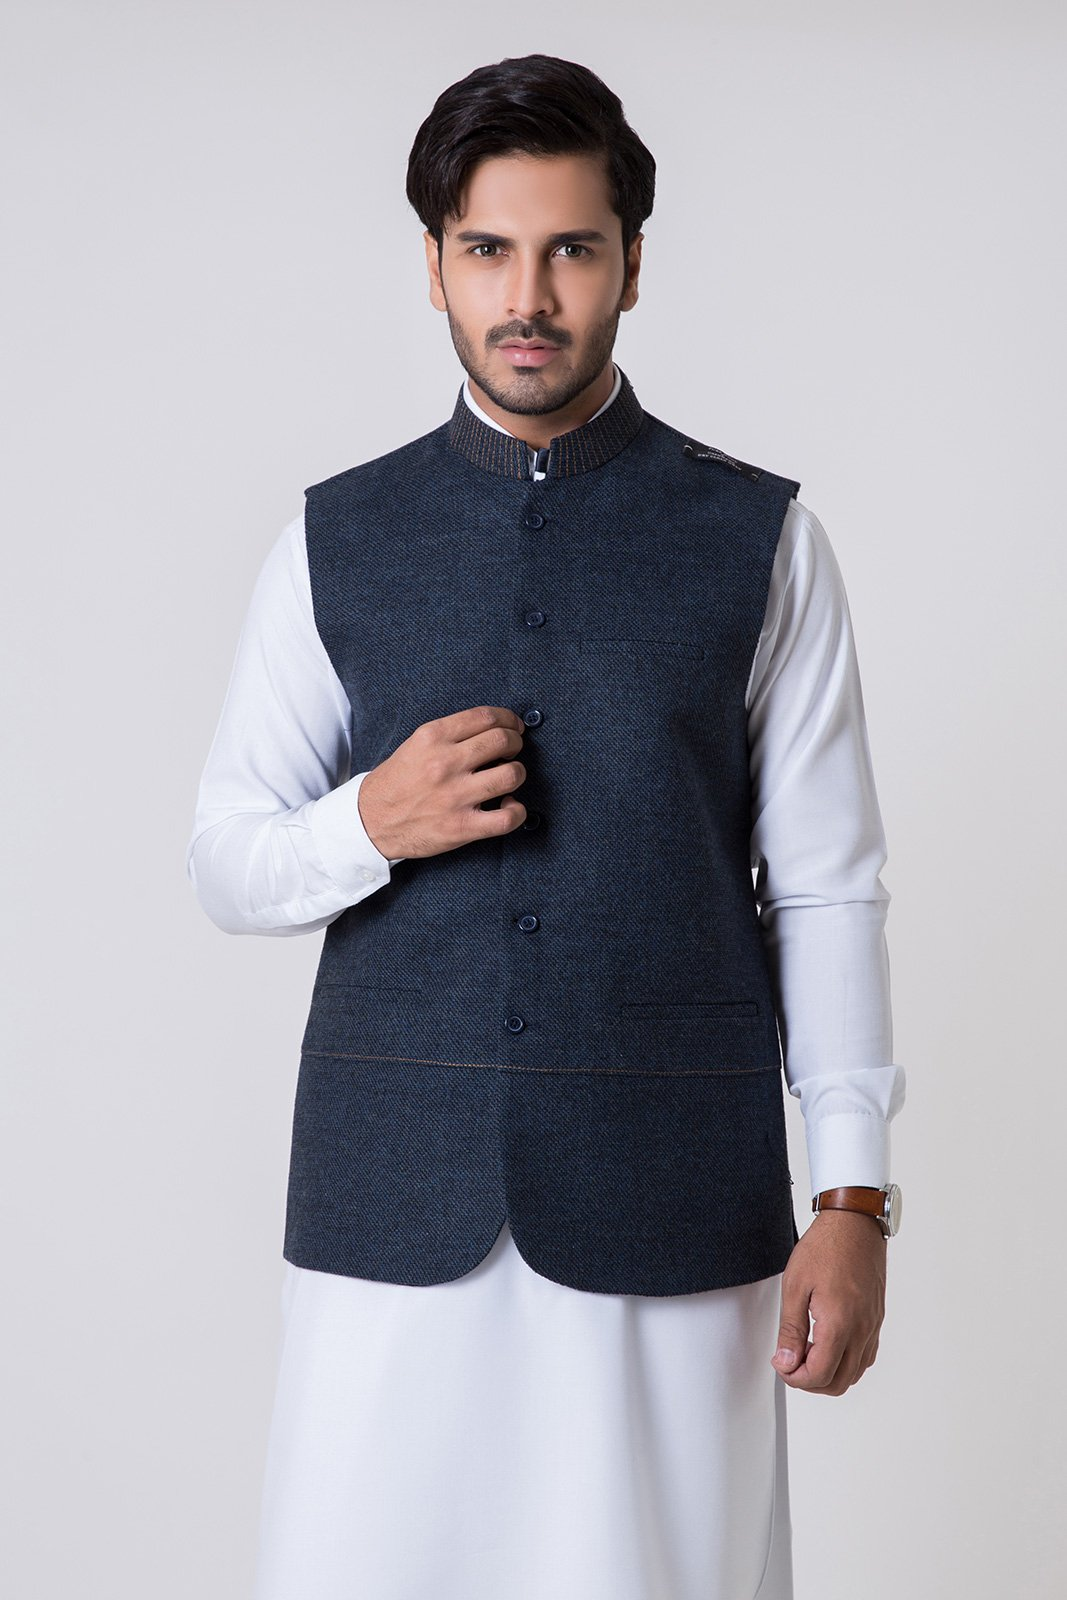 Mens's Waistcoat Collection